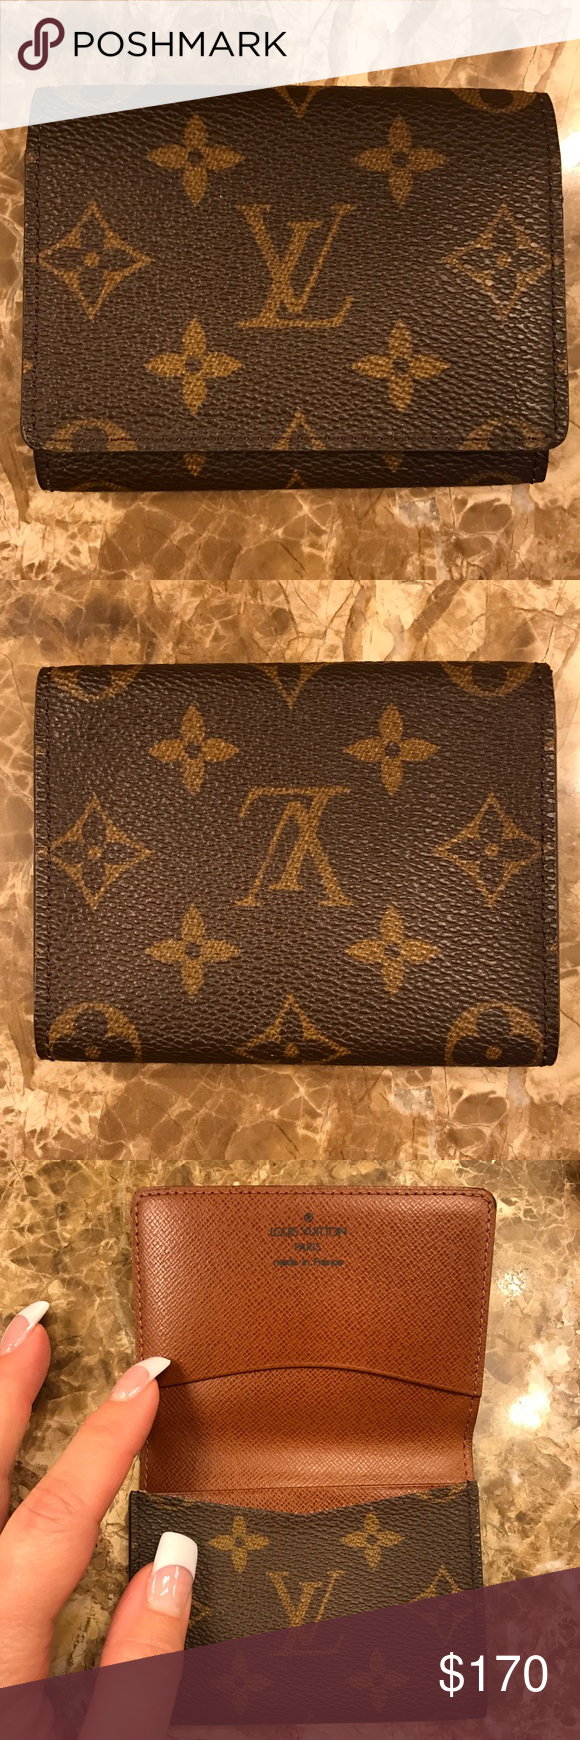 Louis Vuitton Business Card Holder Review Image collections ...